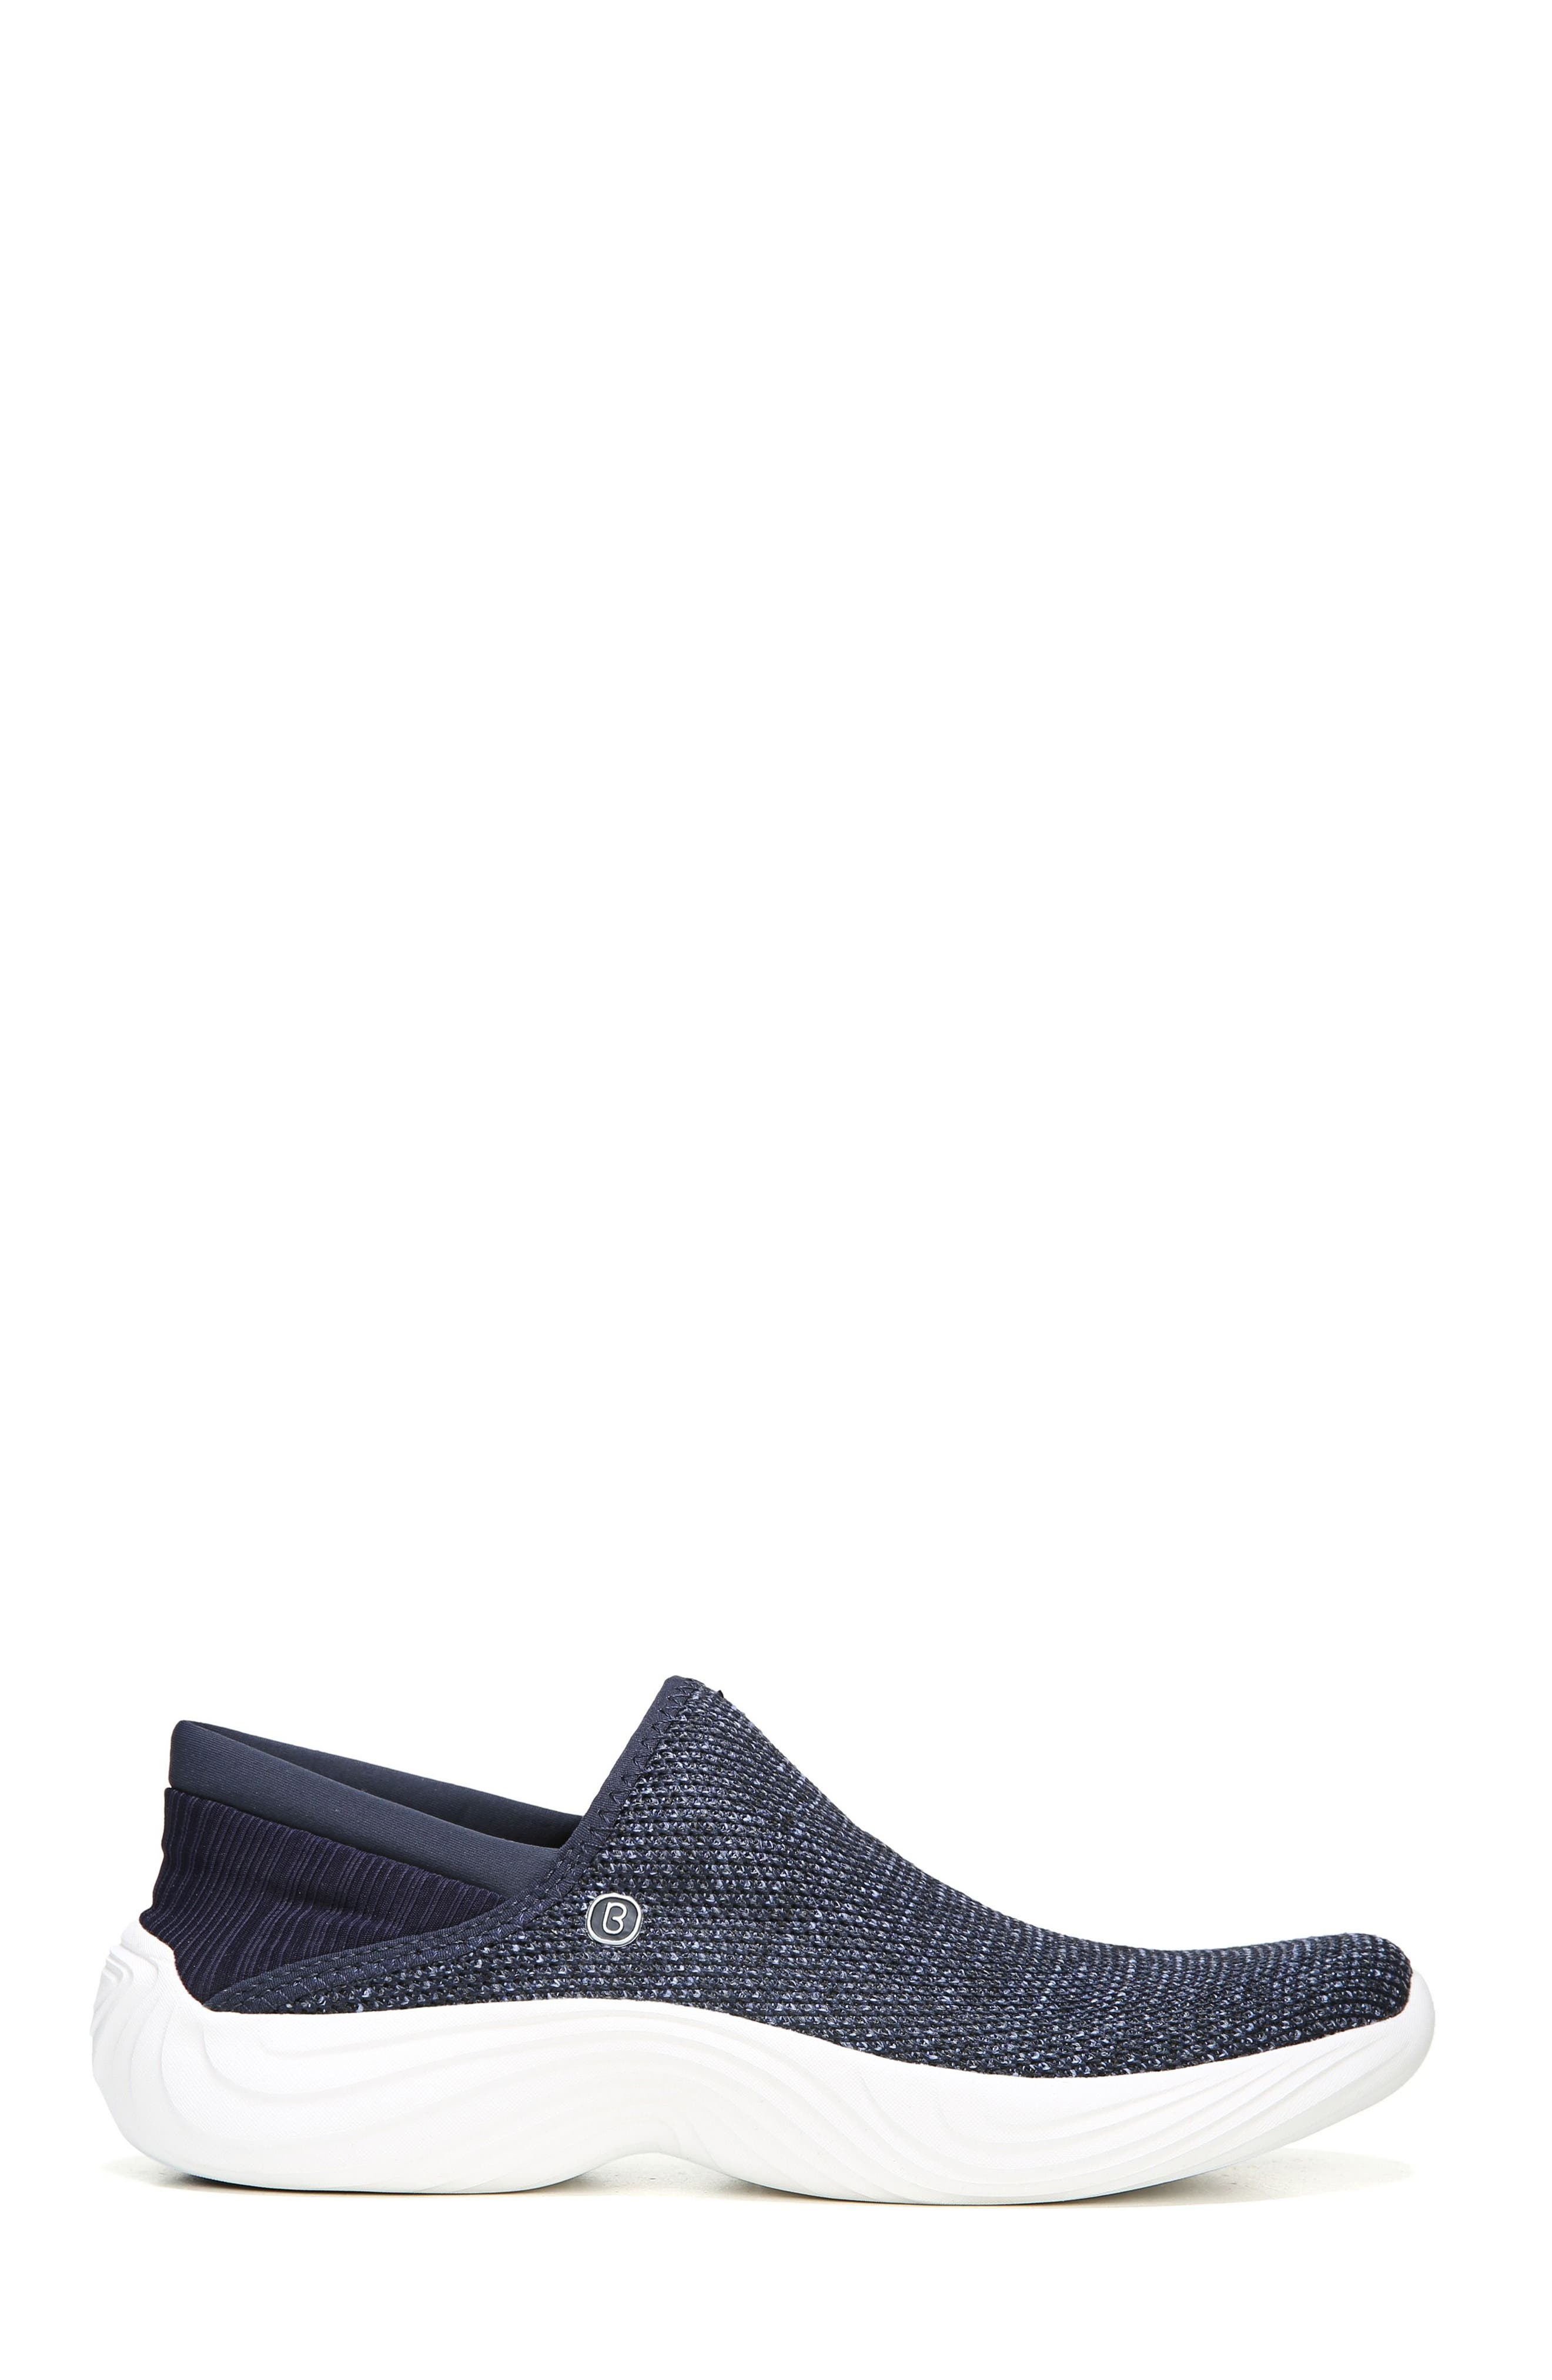 Topaz Slip-On Sneaker,                             Alternate thumbnail 3, color,                             Navy Fabric